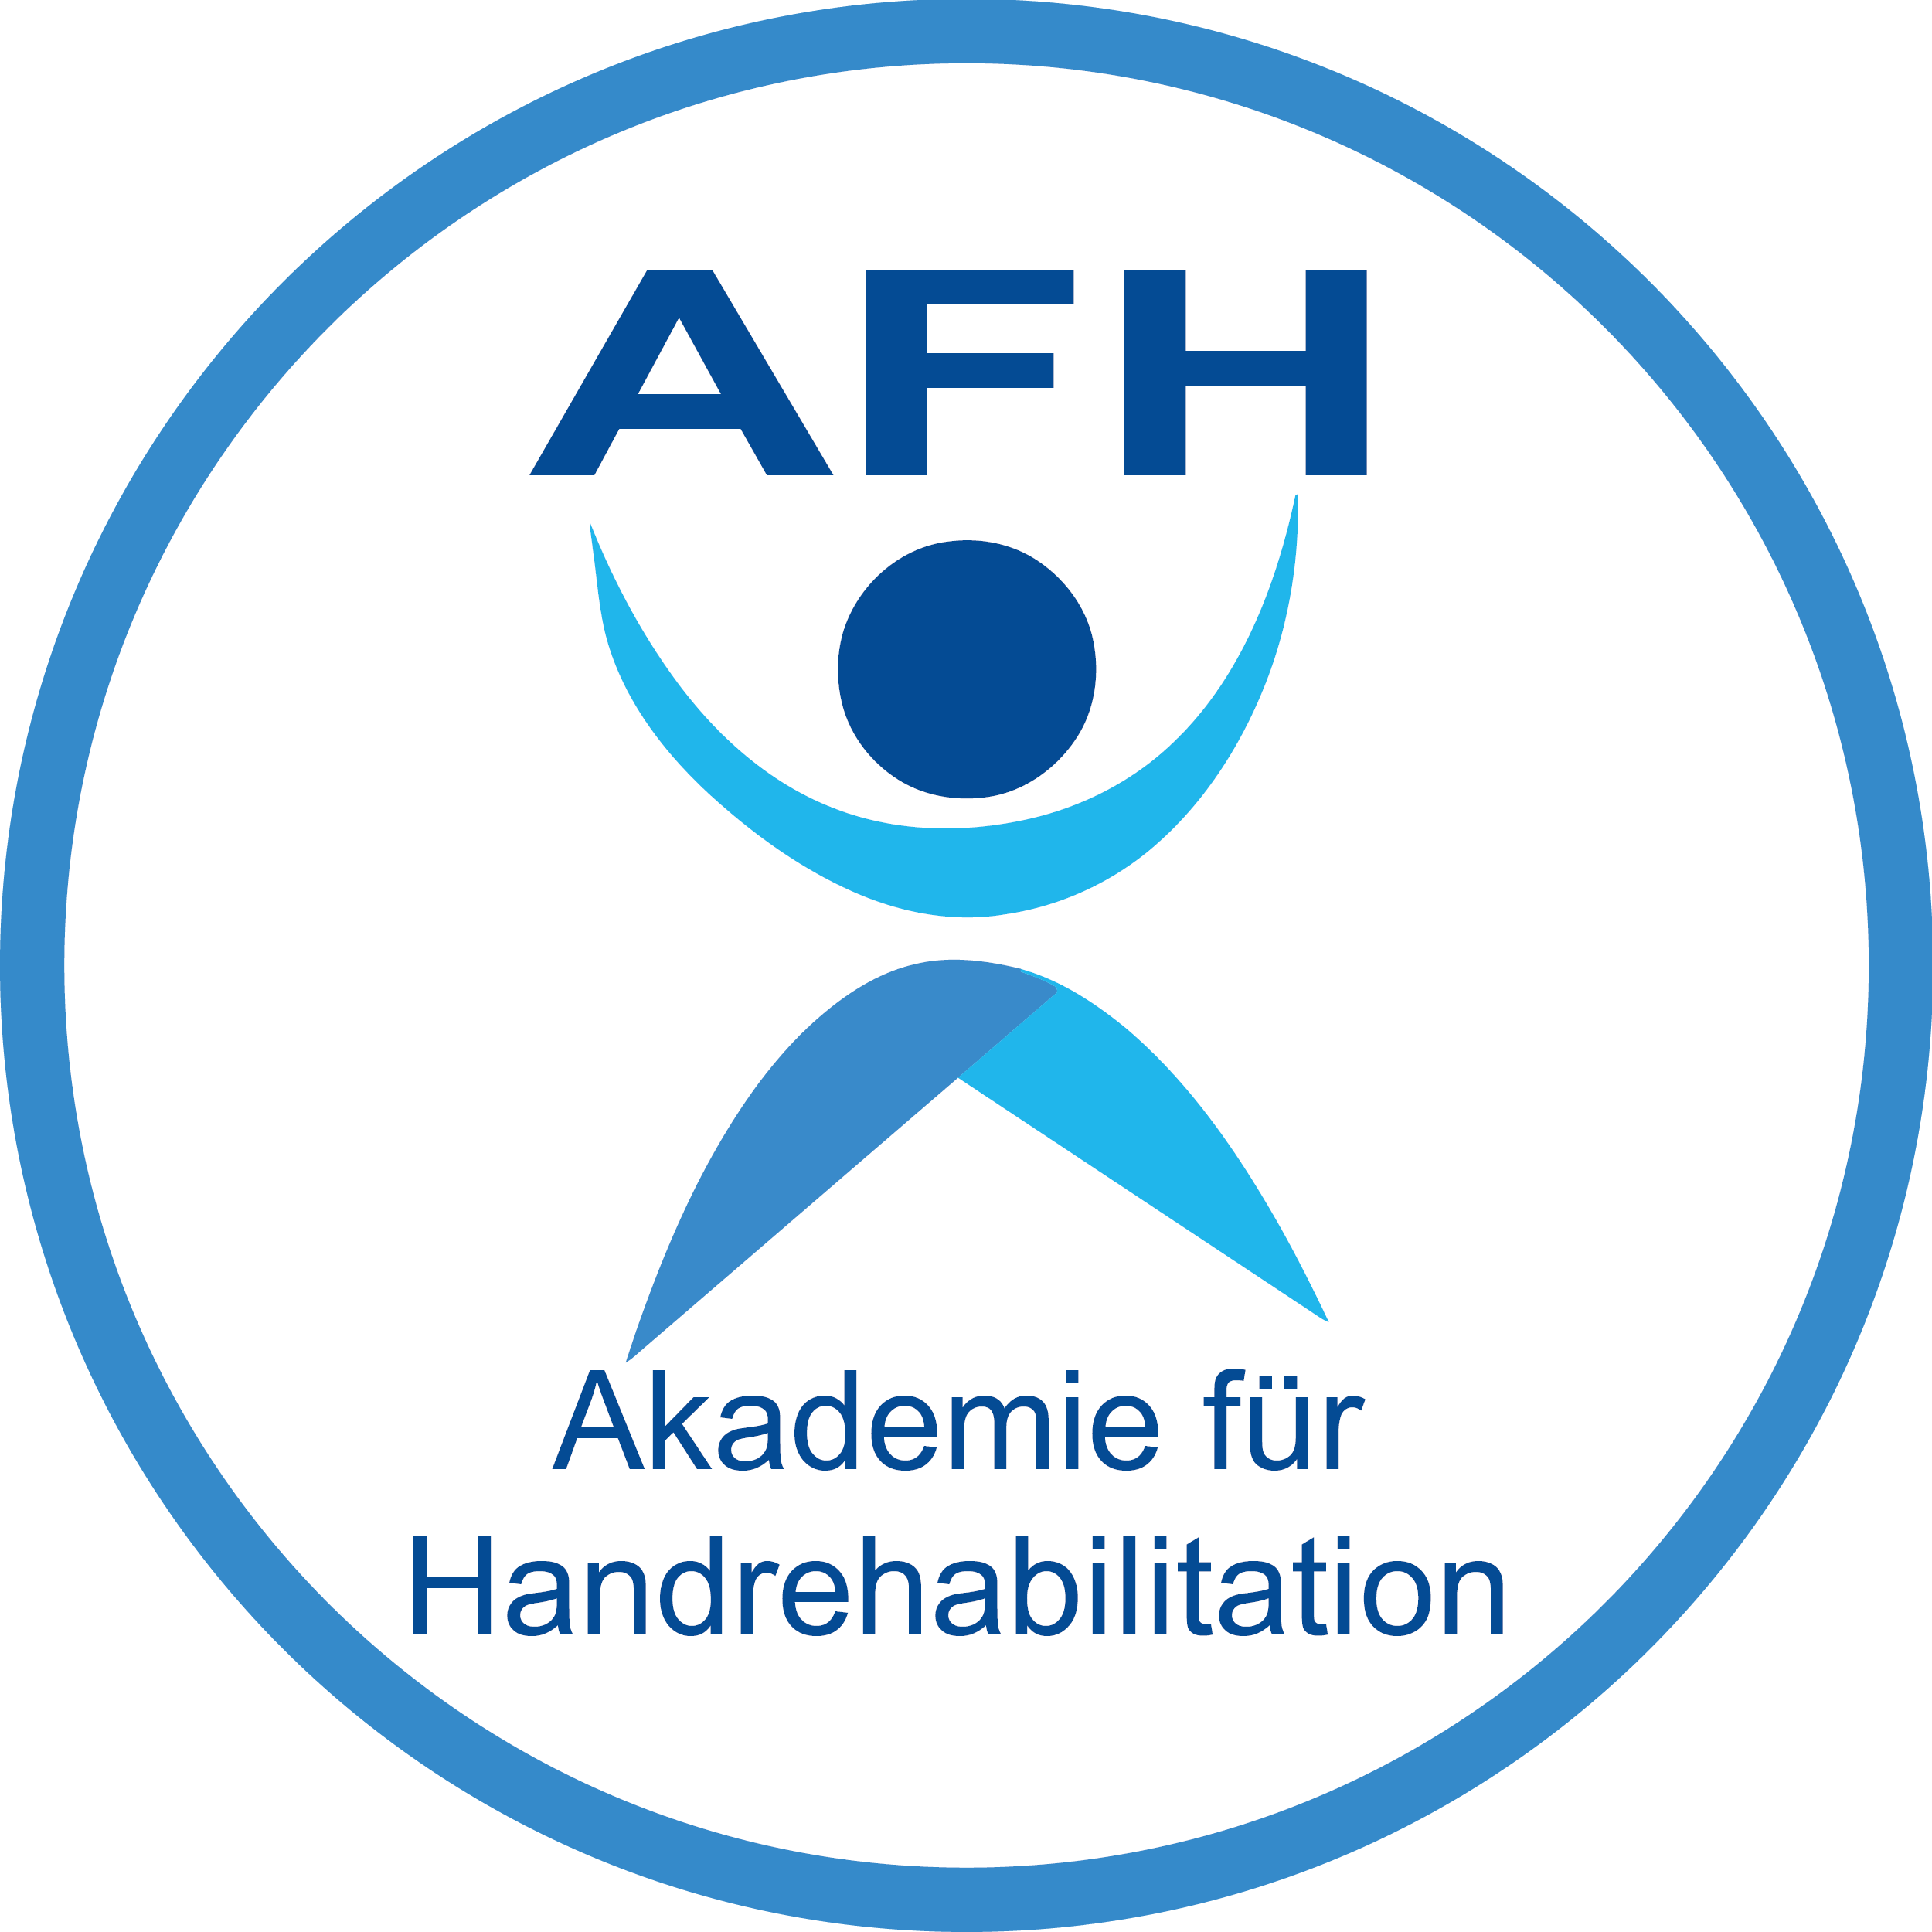 Akademie für Handrehabilitation